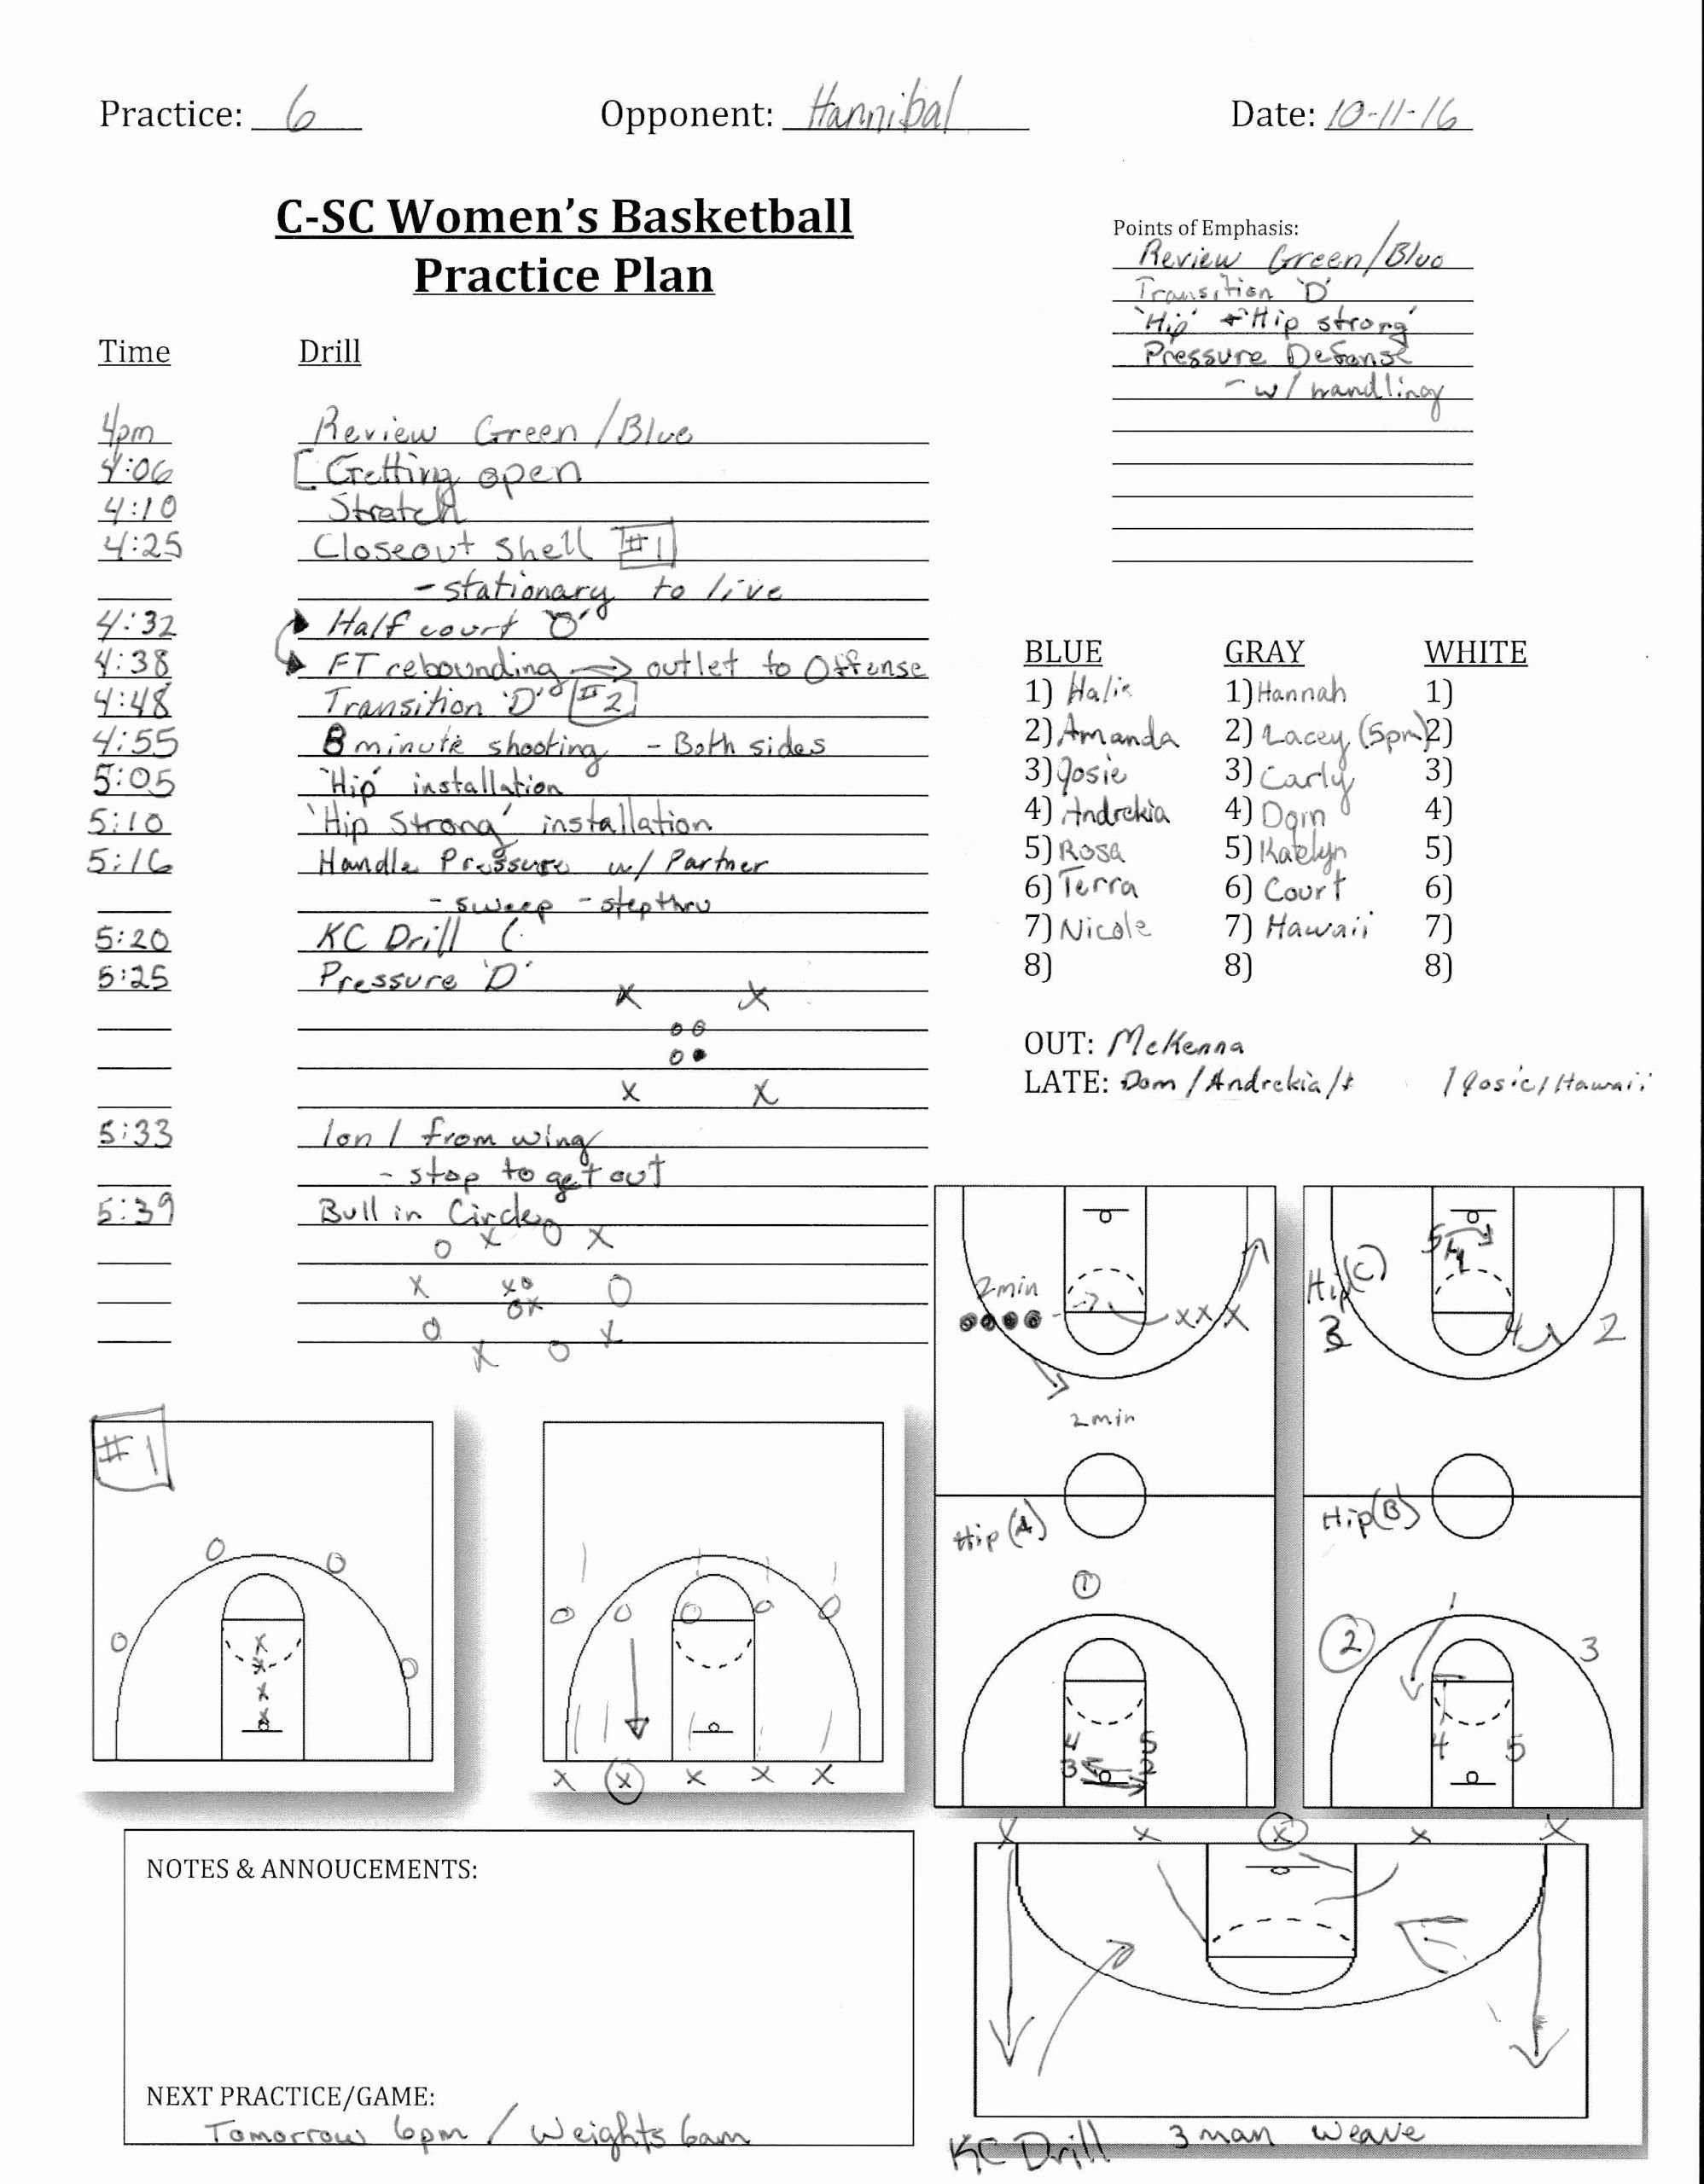 Master Basketball Practice Plan Template Inspirational Basketball Training Plan for Beginners